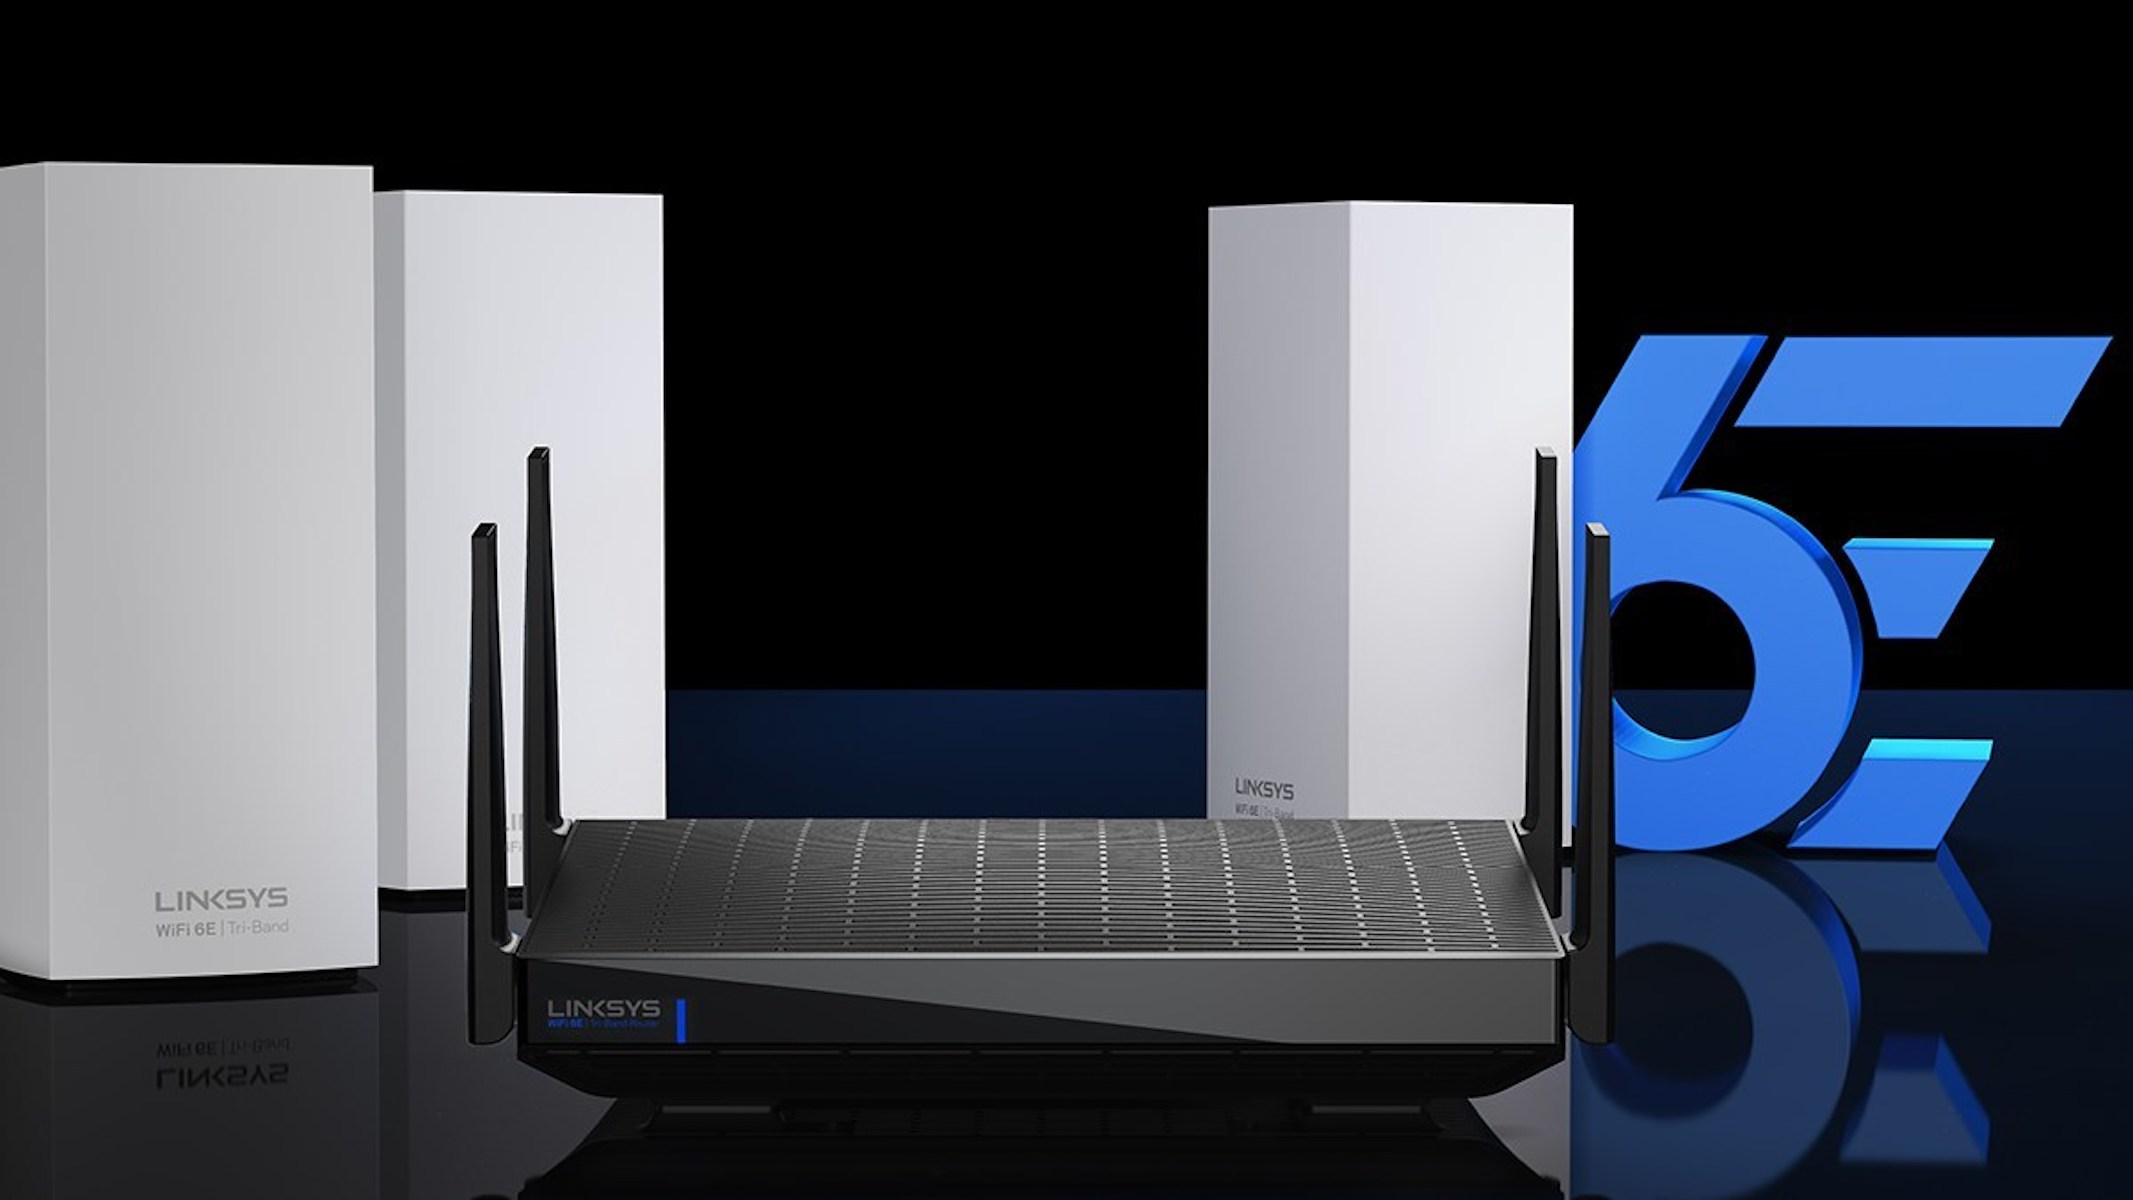 new Linksys Velop mesh router—Hydra Pro 6E